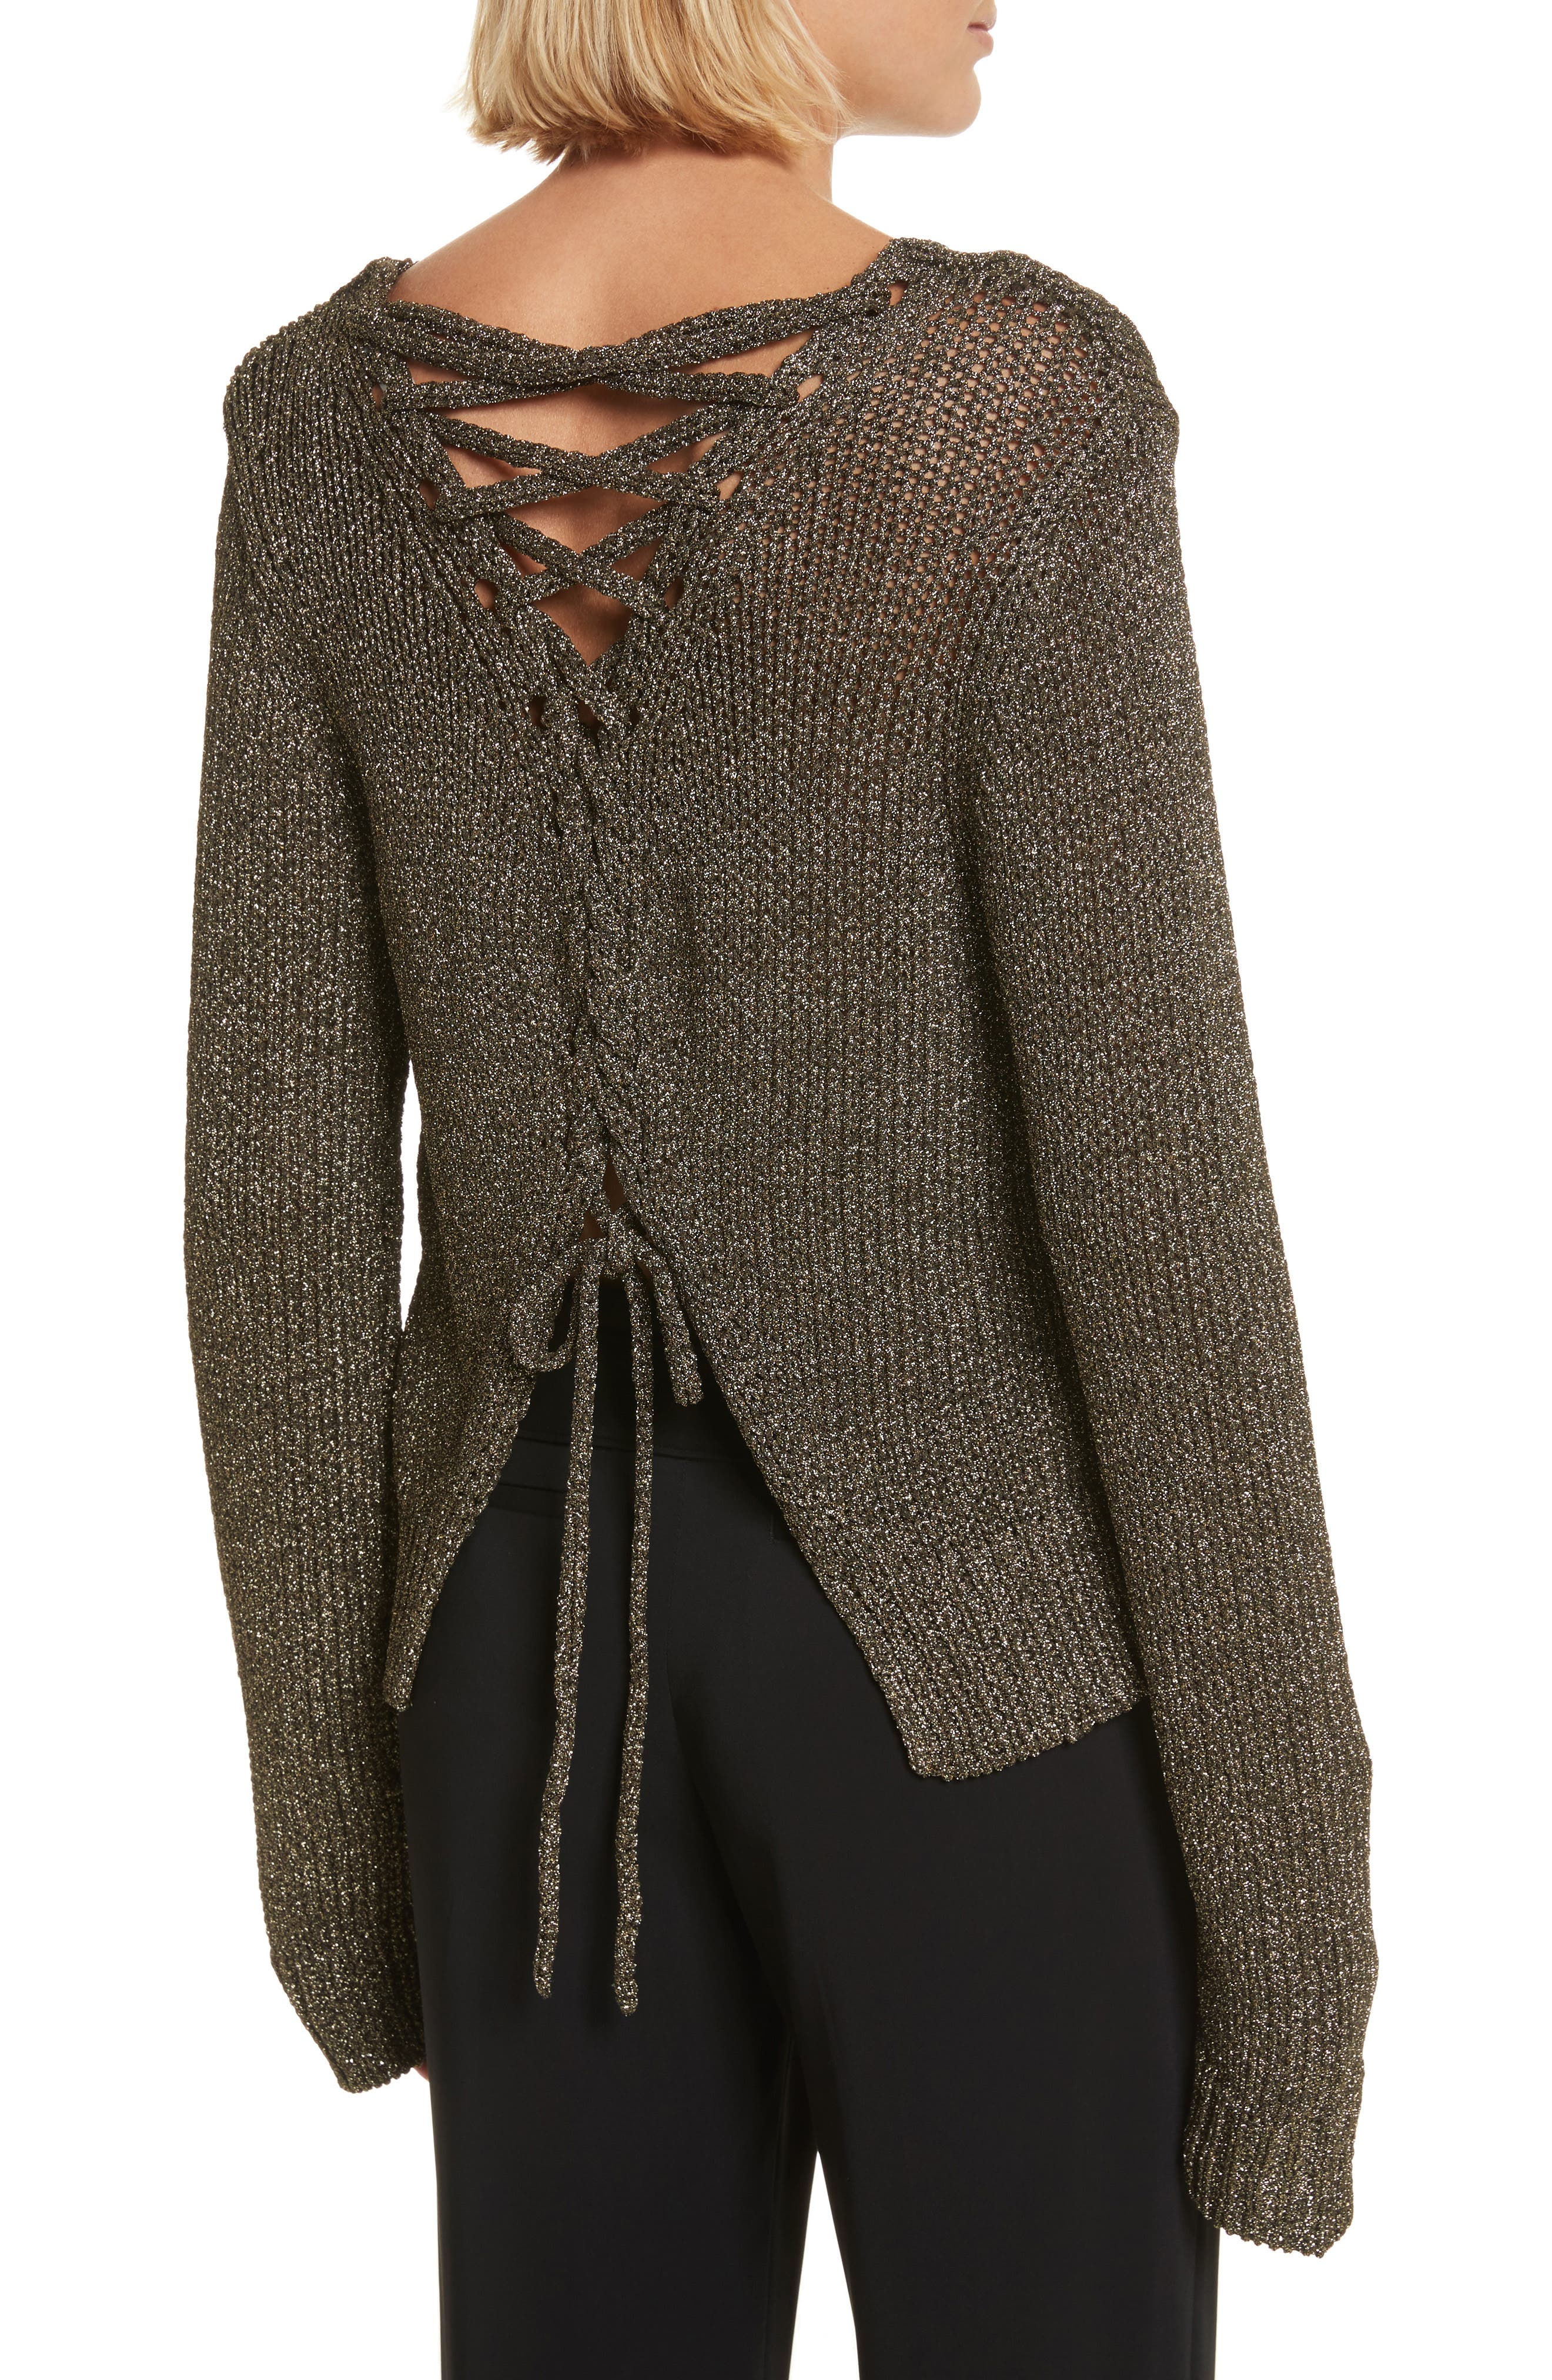 A.L.C. Marjorie Lace-Up Back Sweater